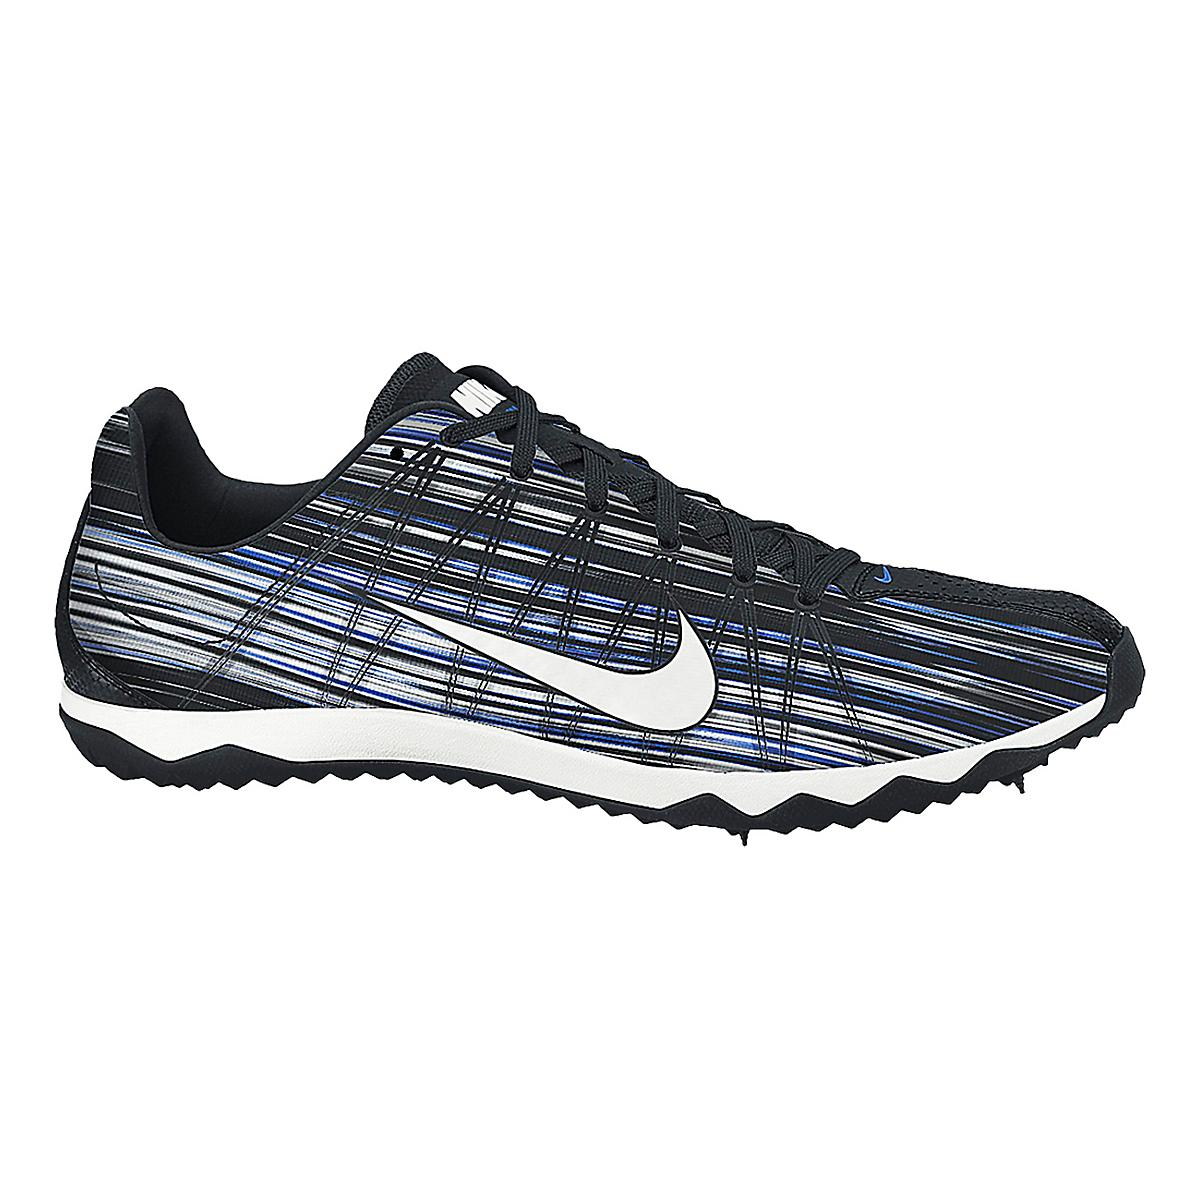 Nike Zoom Waffle 9 Cross Country Shoe Alliance for Networking